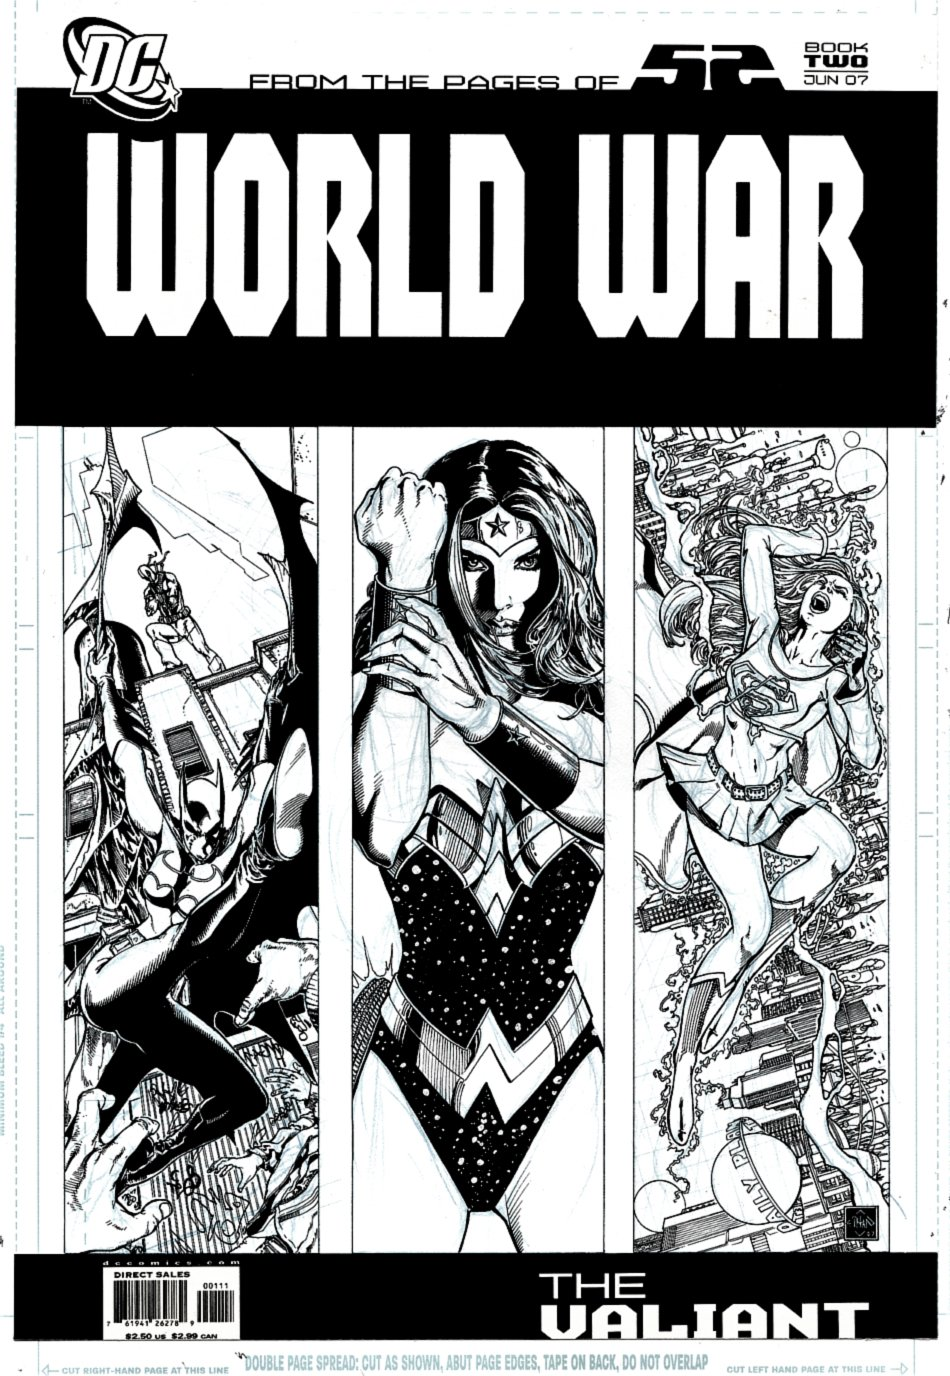 World War II #2 Cover (Batgirl, Wonder Woman, Supergirl) 2007